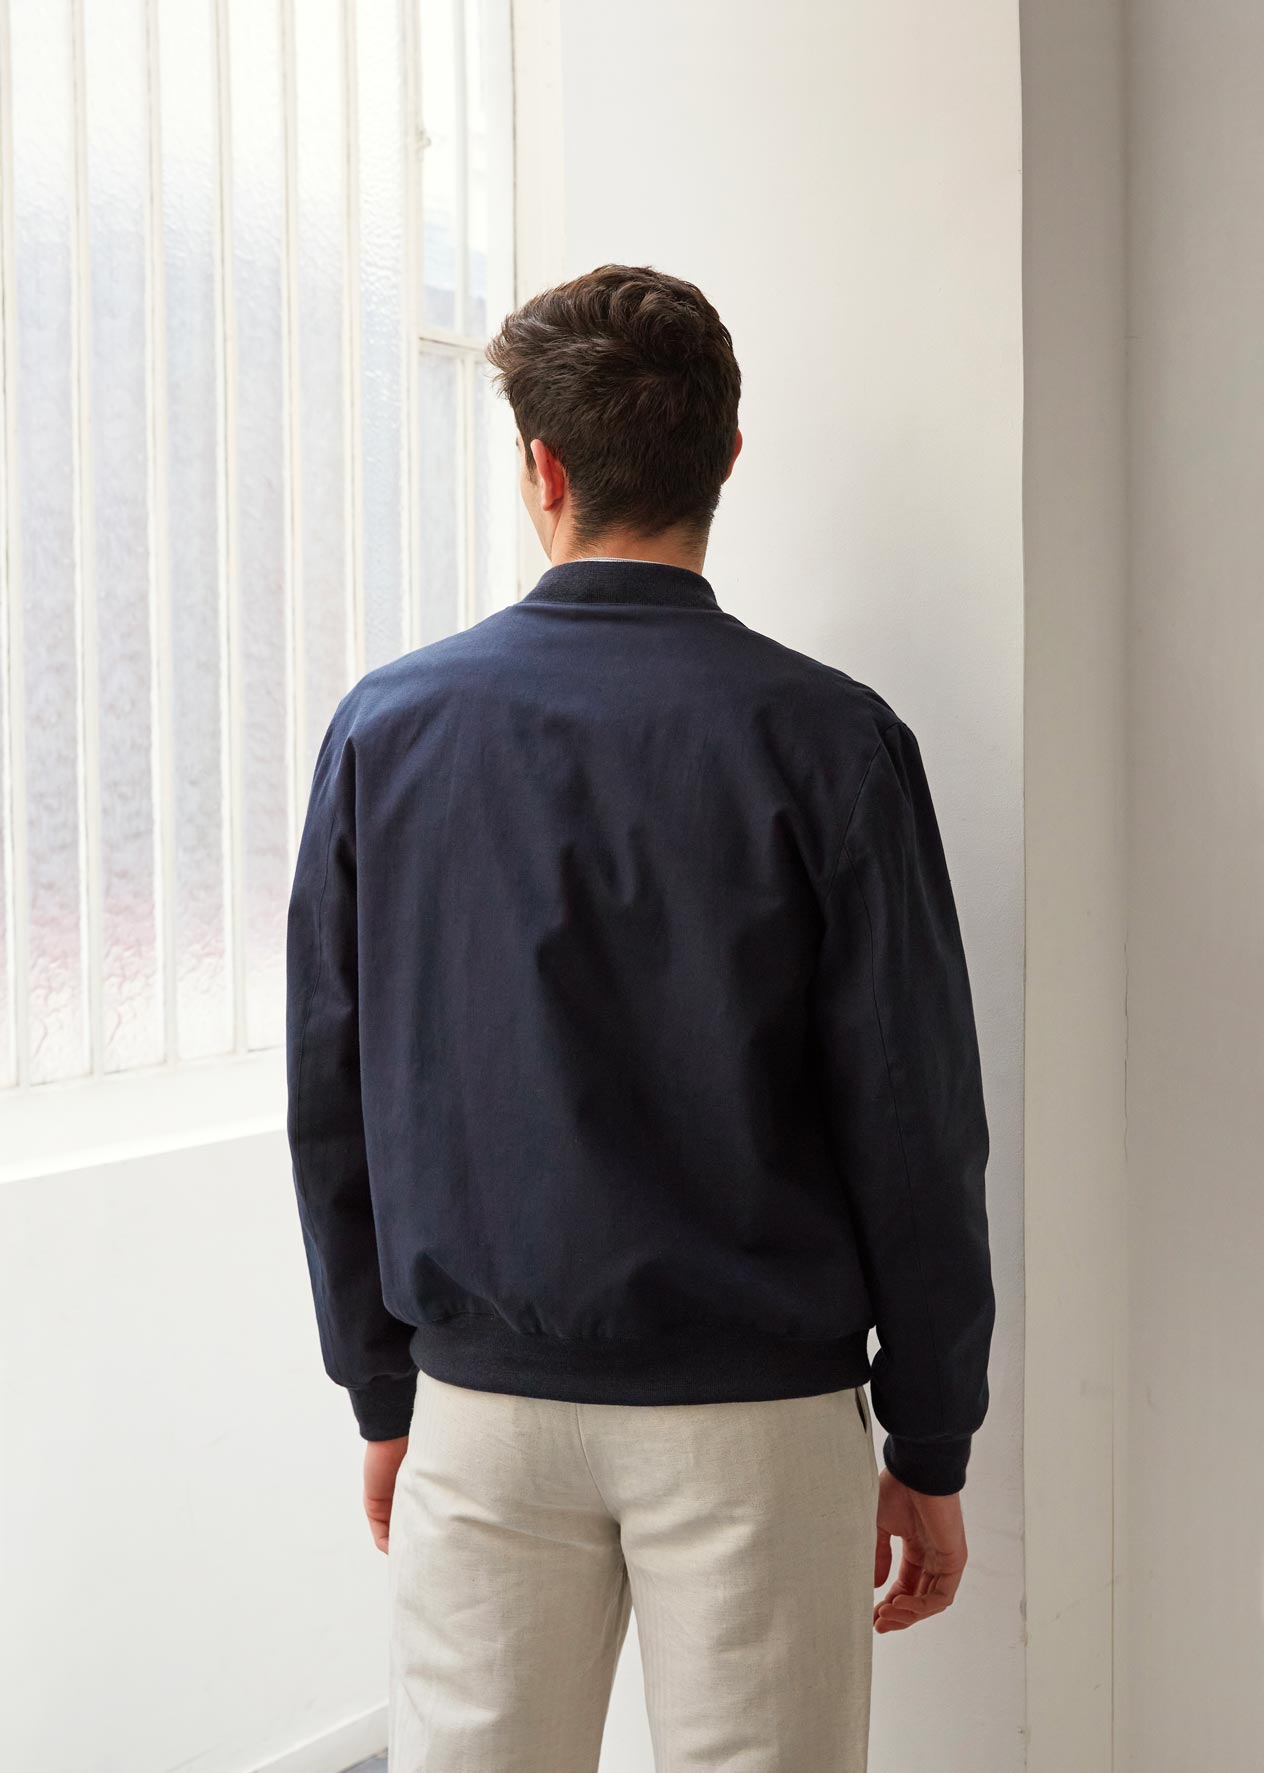 Teddy jacket - Organic cotton twill - Navy - De Bonne Facture